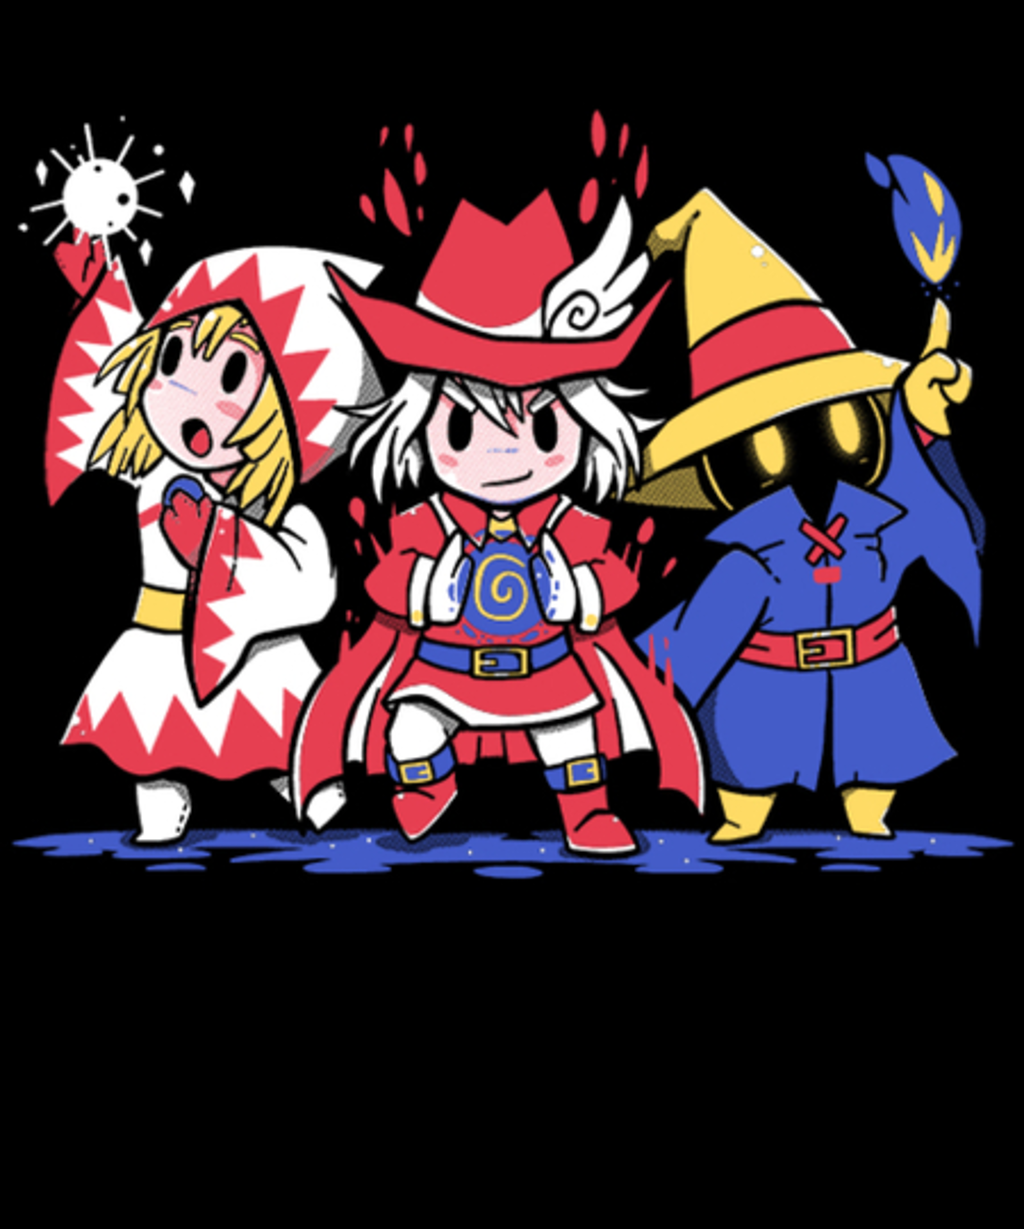 Qwertee: The Three Mages